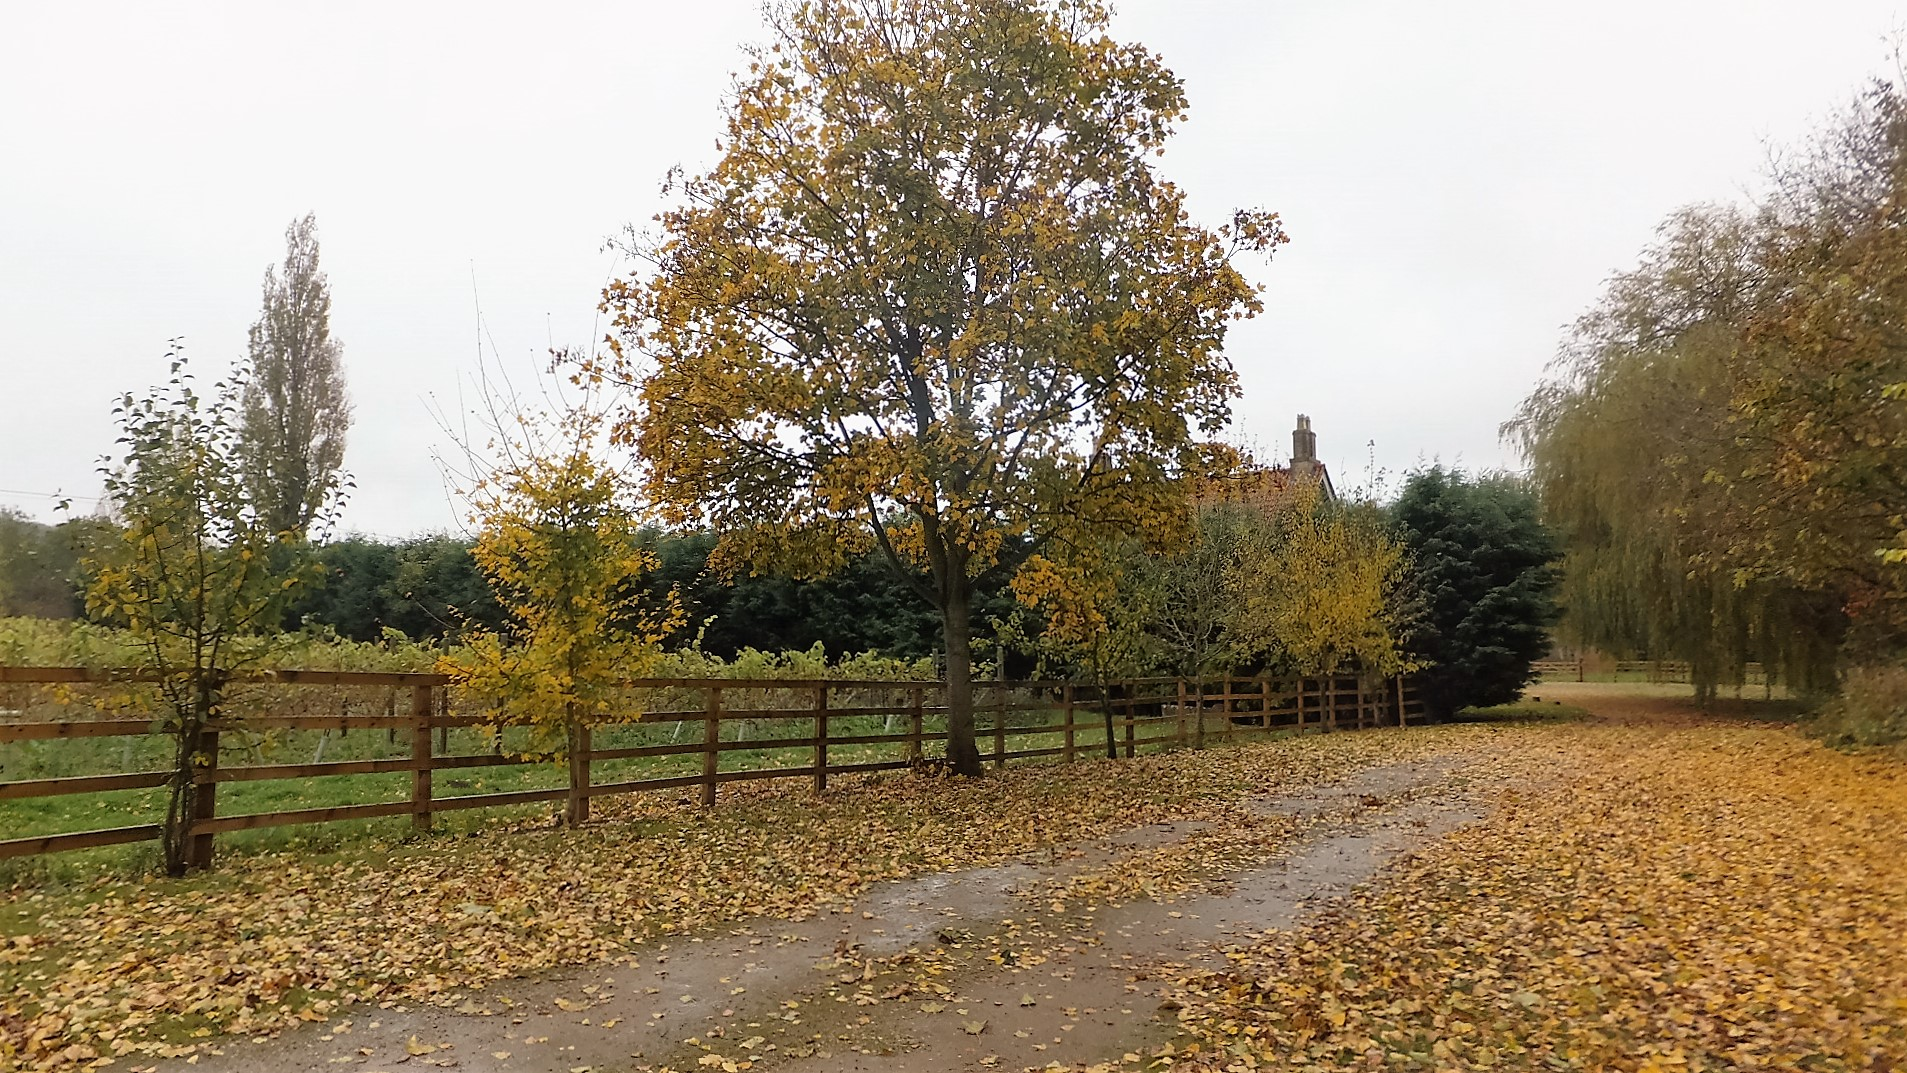 The approach to the Cottage is looking wonderful this autumn.